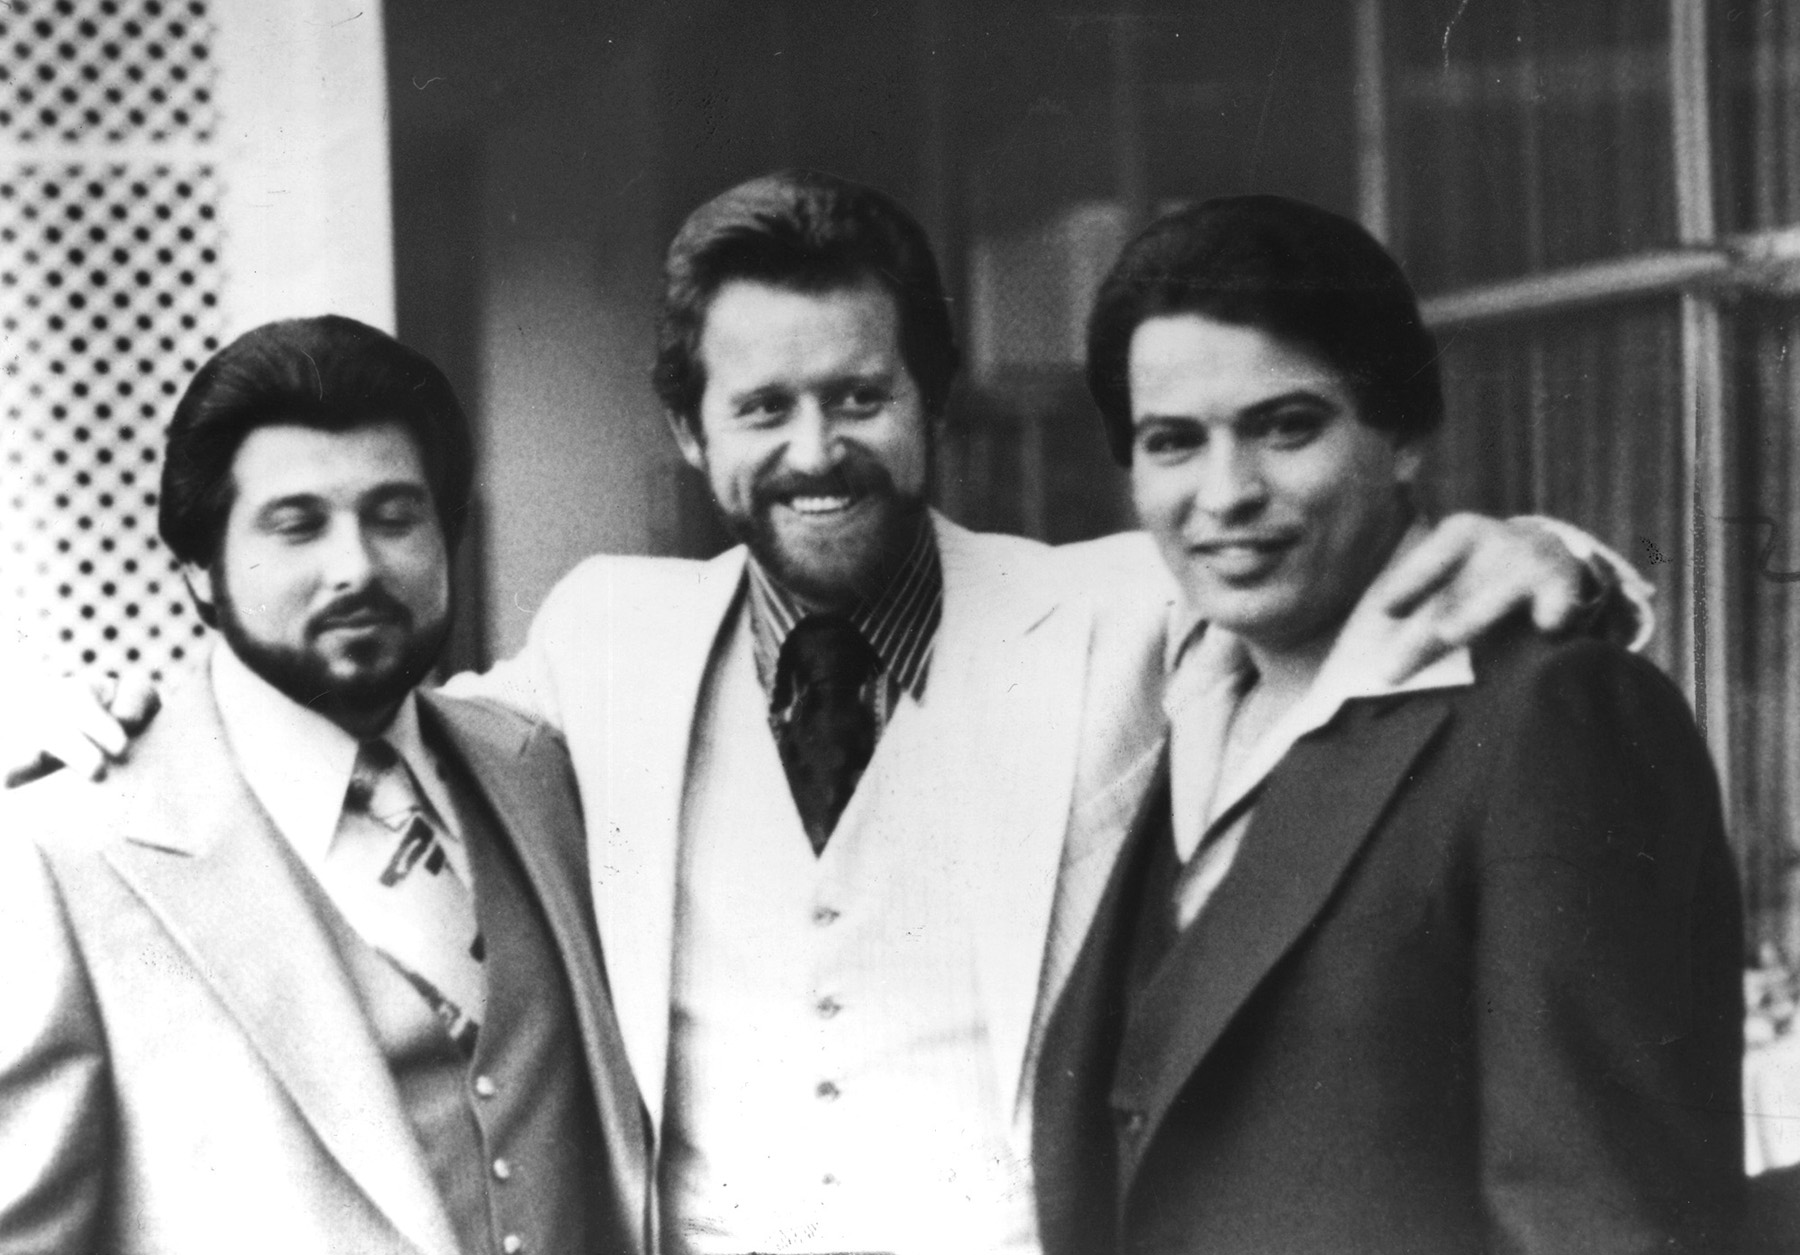 Jerry Tillinghast , center, with his arm around the man he was convicted of murdering,  George Basmajian ,left. The man on the right is Matthew Guglielmetti, another member of the Patriarca crime family.  Courtesy of the Providence Journal .